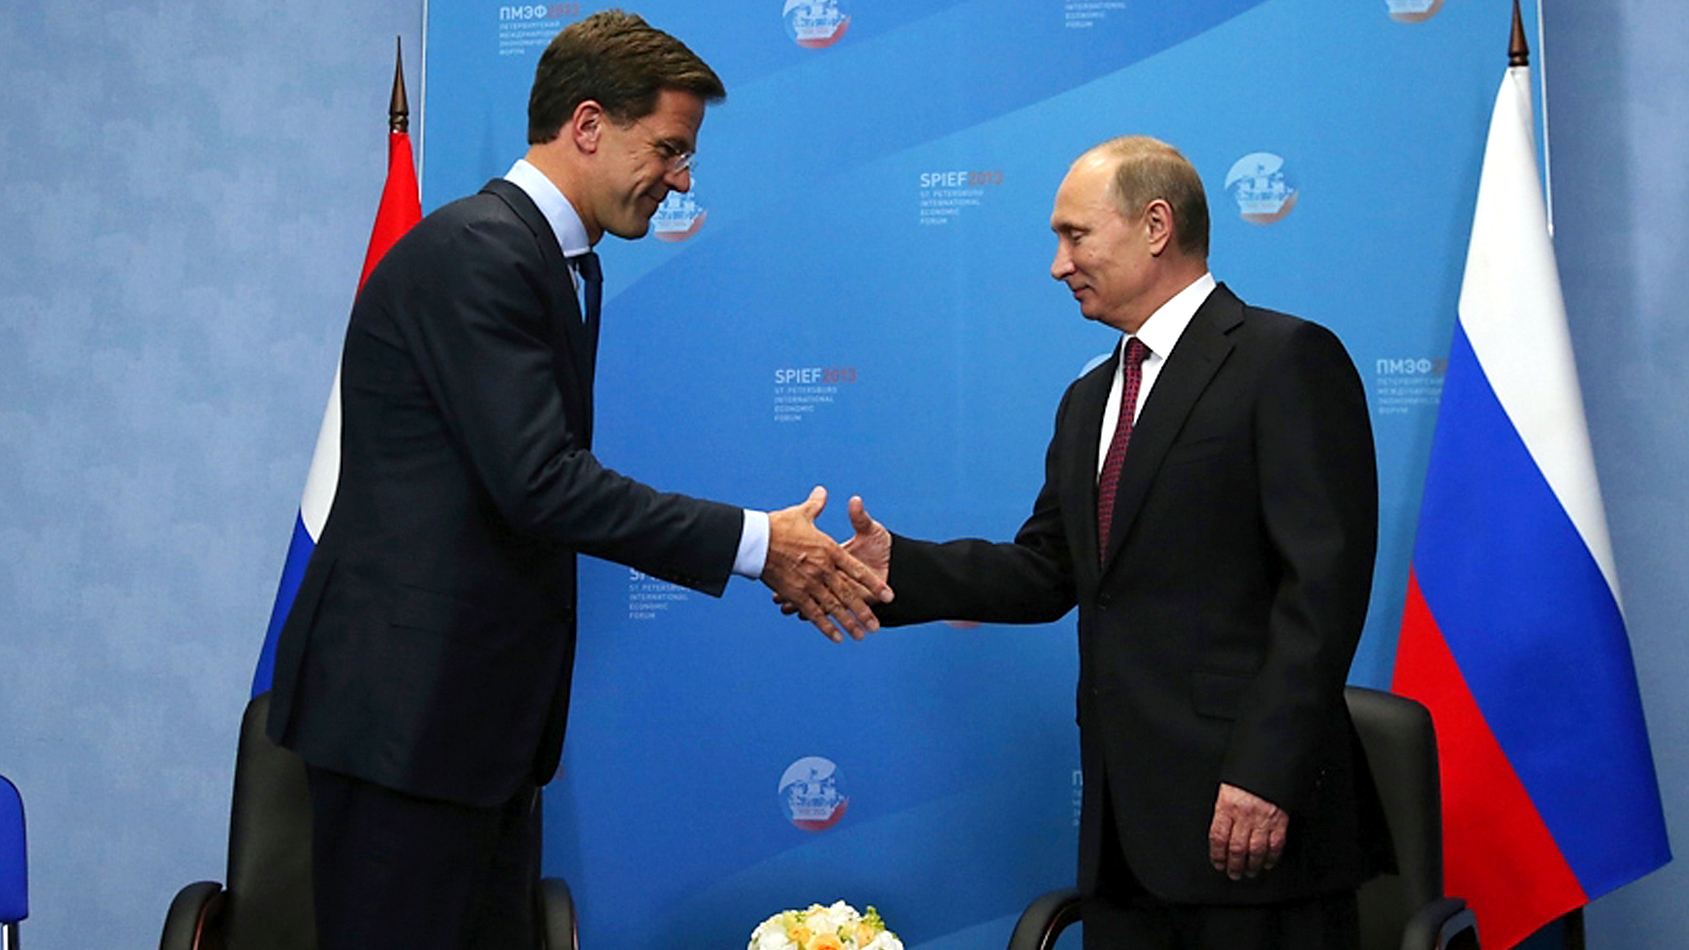 Russia's President Vladimir Putin (R) welcomes the Netherlands' Prime Minister Mark Rutte during their meeting at the International Economic Forum in St. Petersburg, Russia, June 20, 2013.